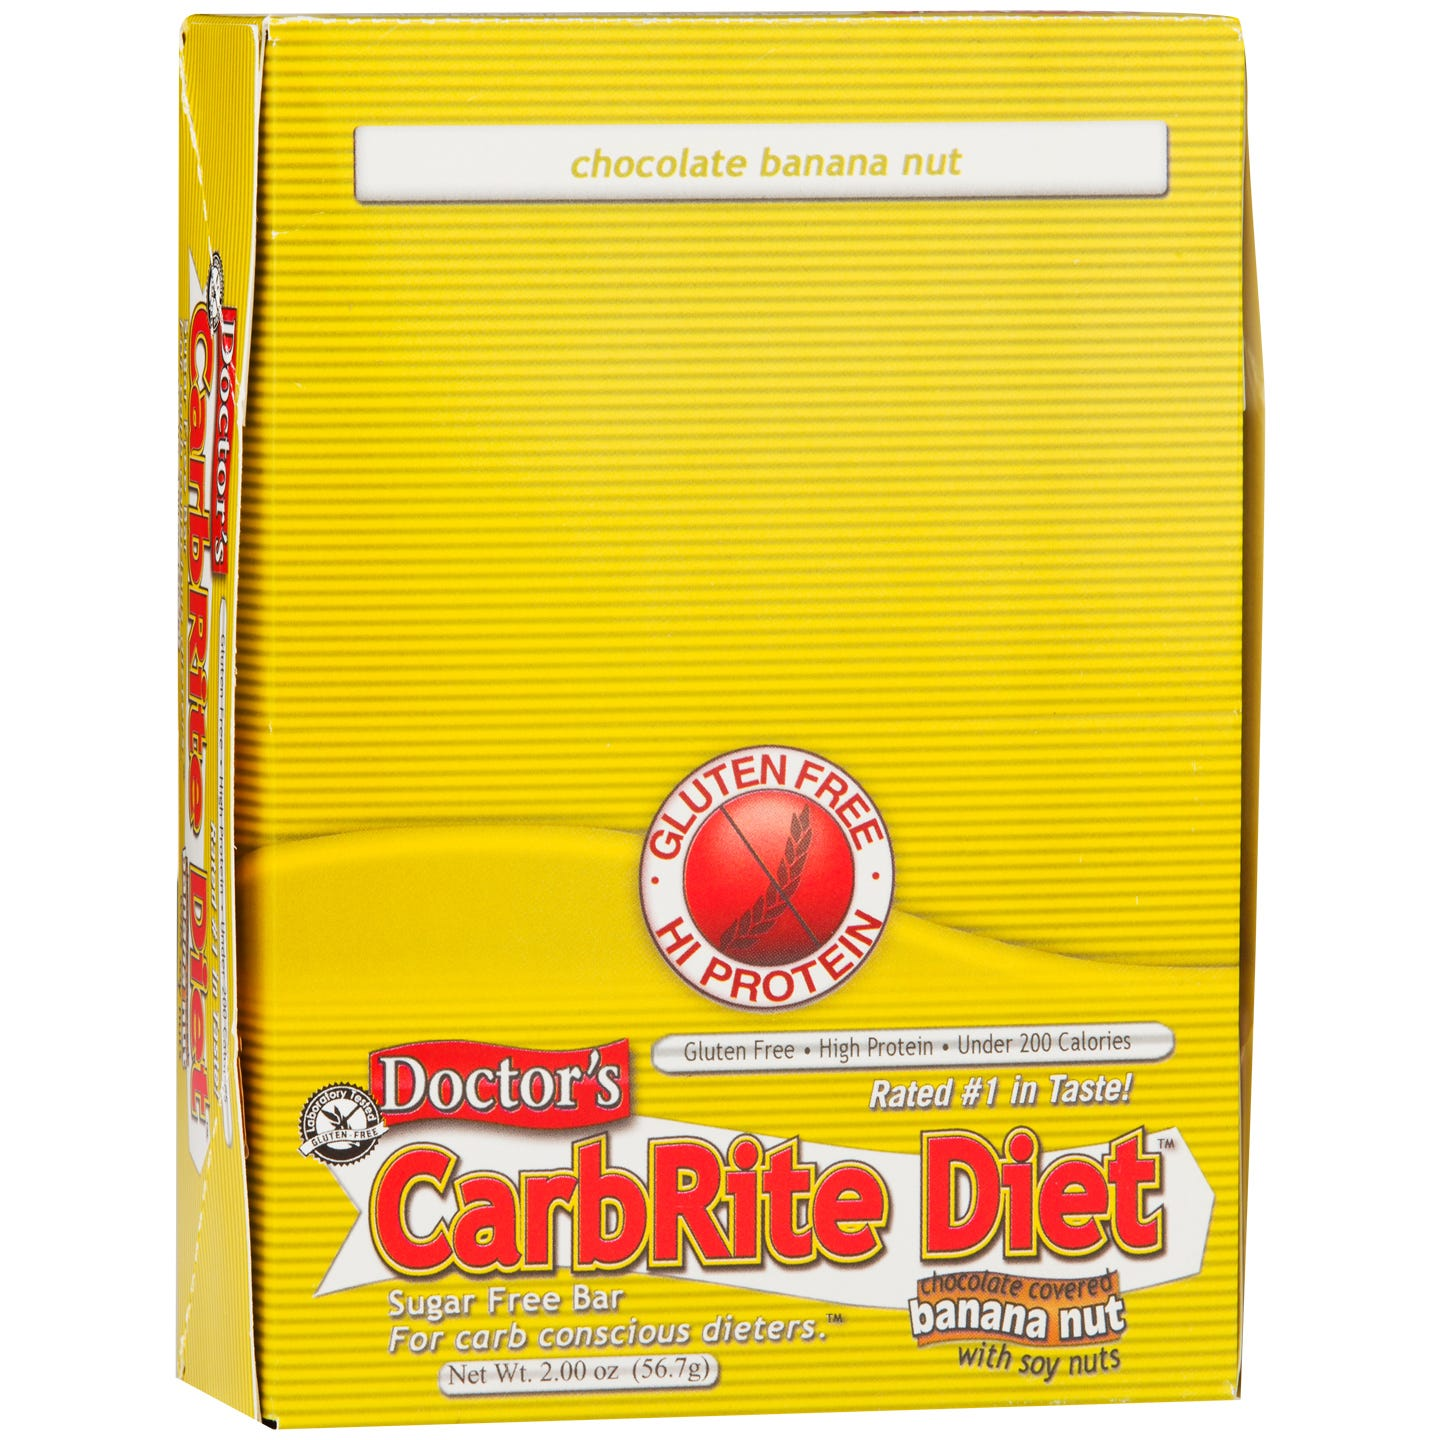 Protein Bars Banana Nut (12 ct) - Doctor's CarbRite Diet - Rapid Diet Weight Loss Products Shop